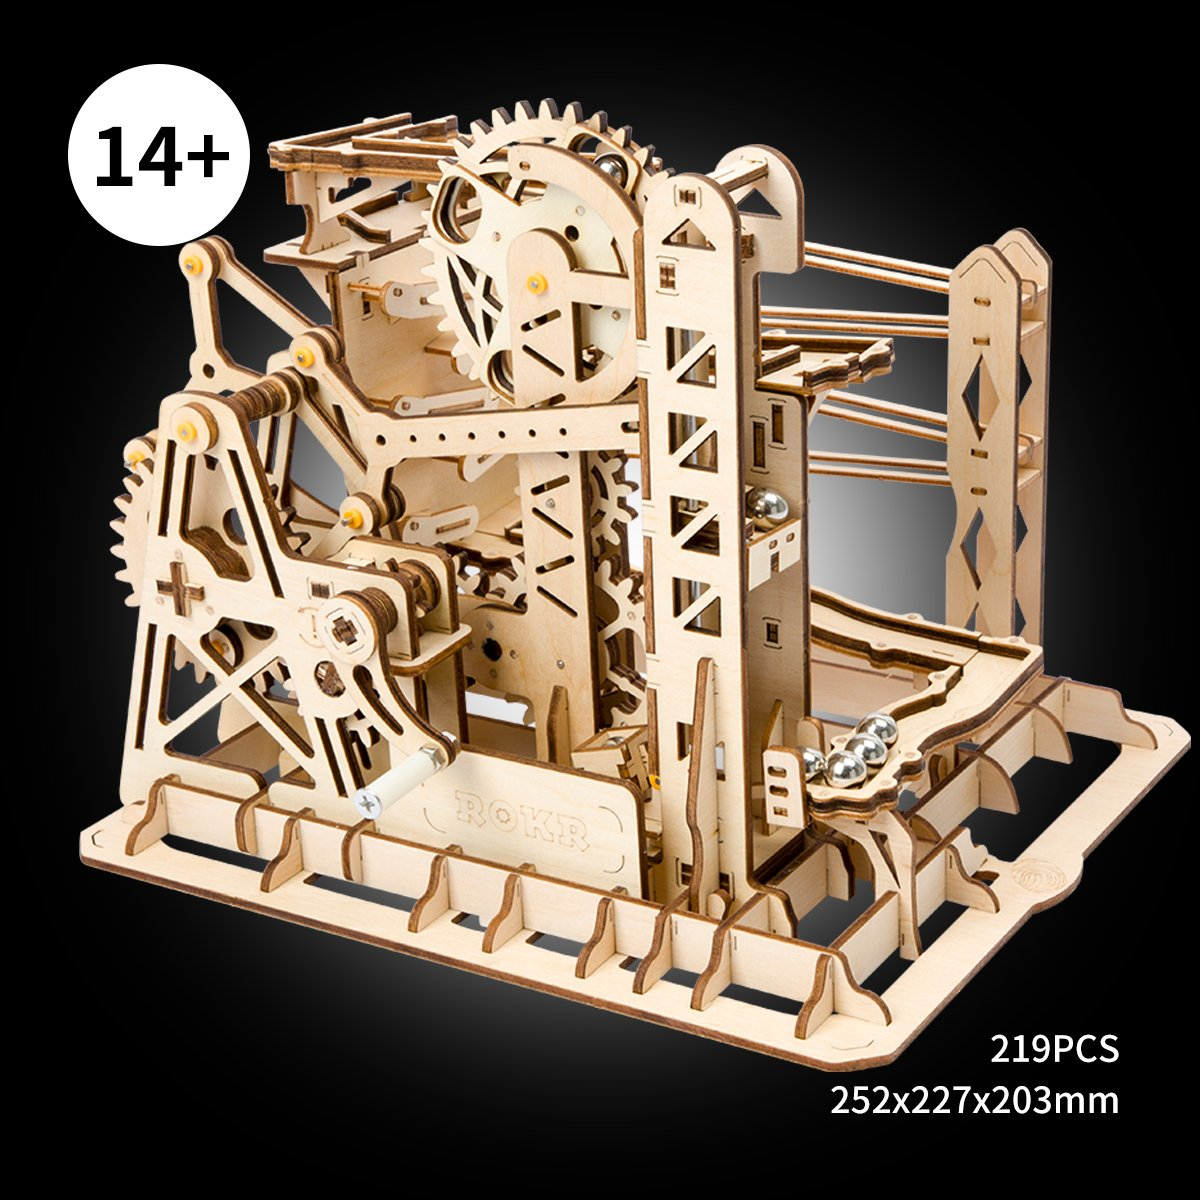 ROBOTIME 3D Puzzle Engineering Toys STEM Learning Kits Wooden Laser-Cut Model Kit Best Mechanical Gears Toy Gifts for Adults & Teens by ROBOTIME (Image #2)